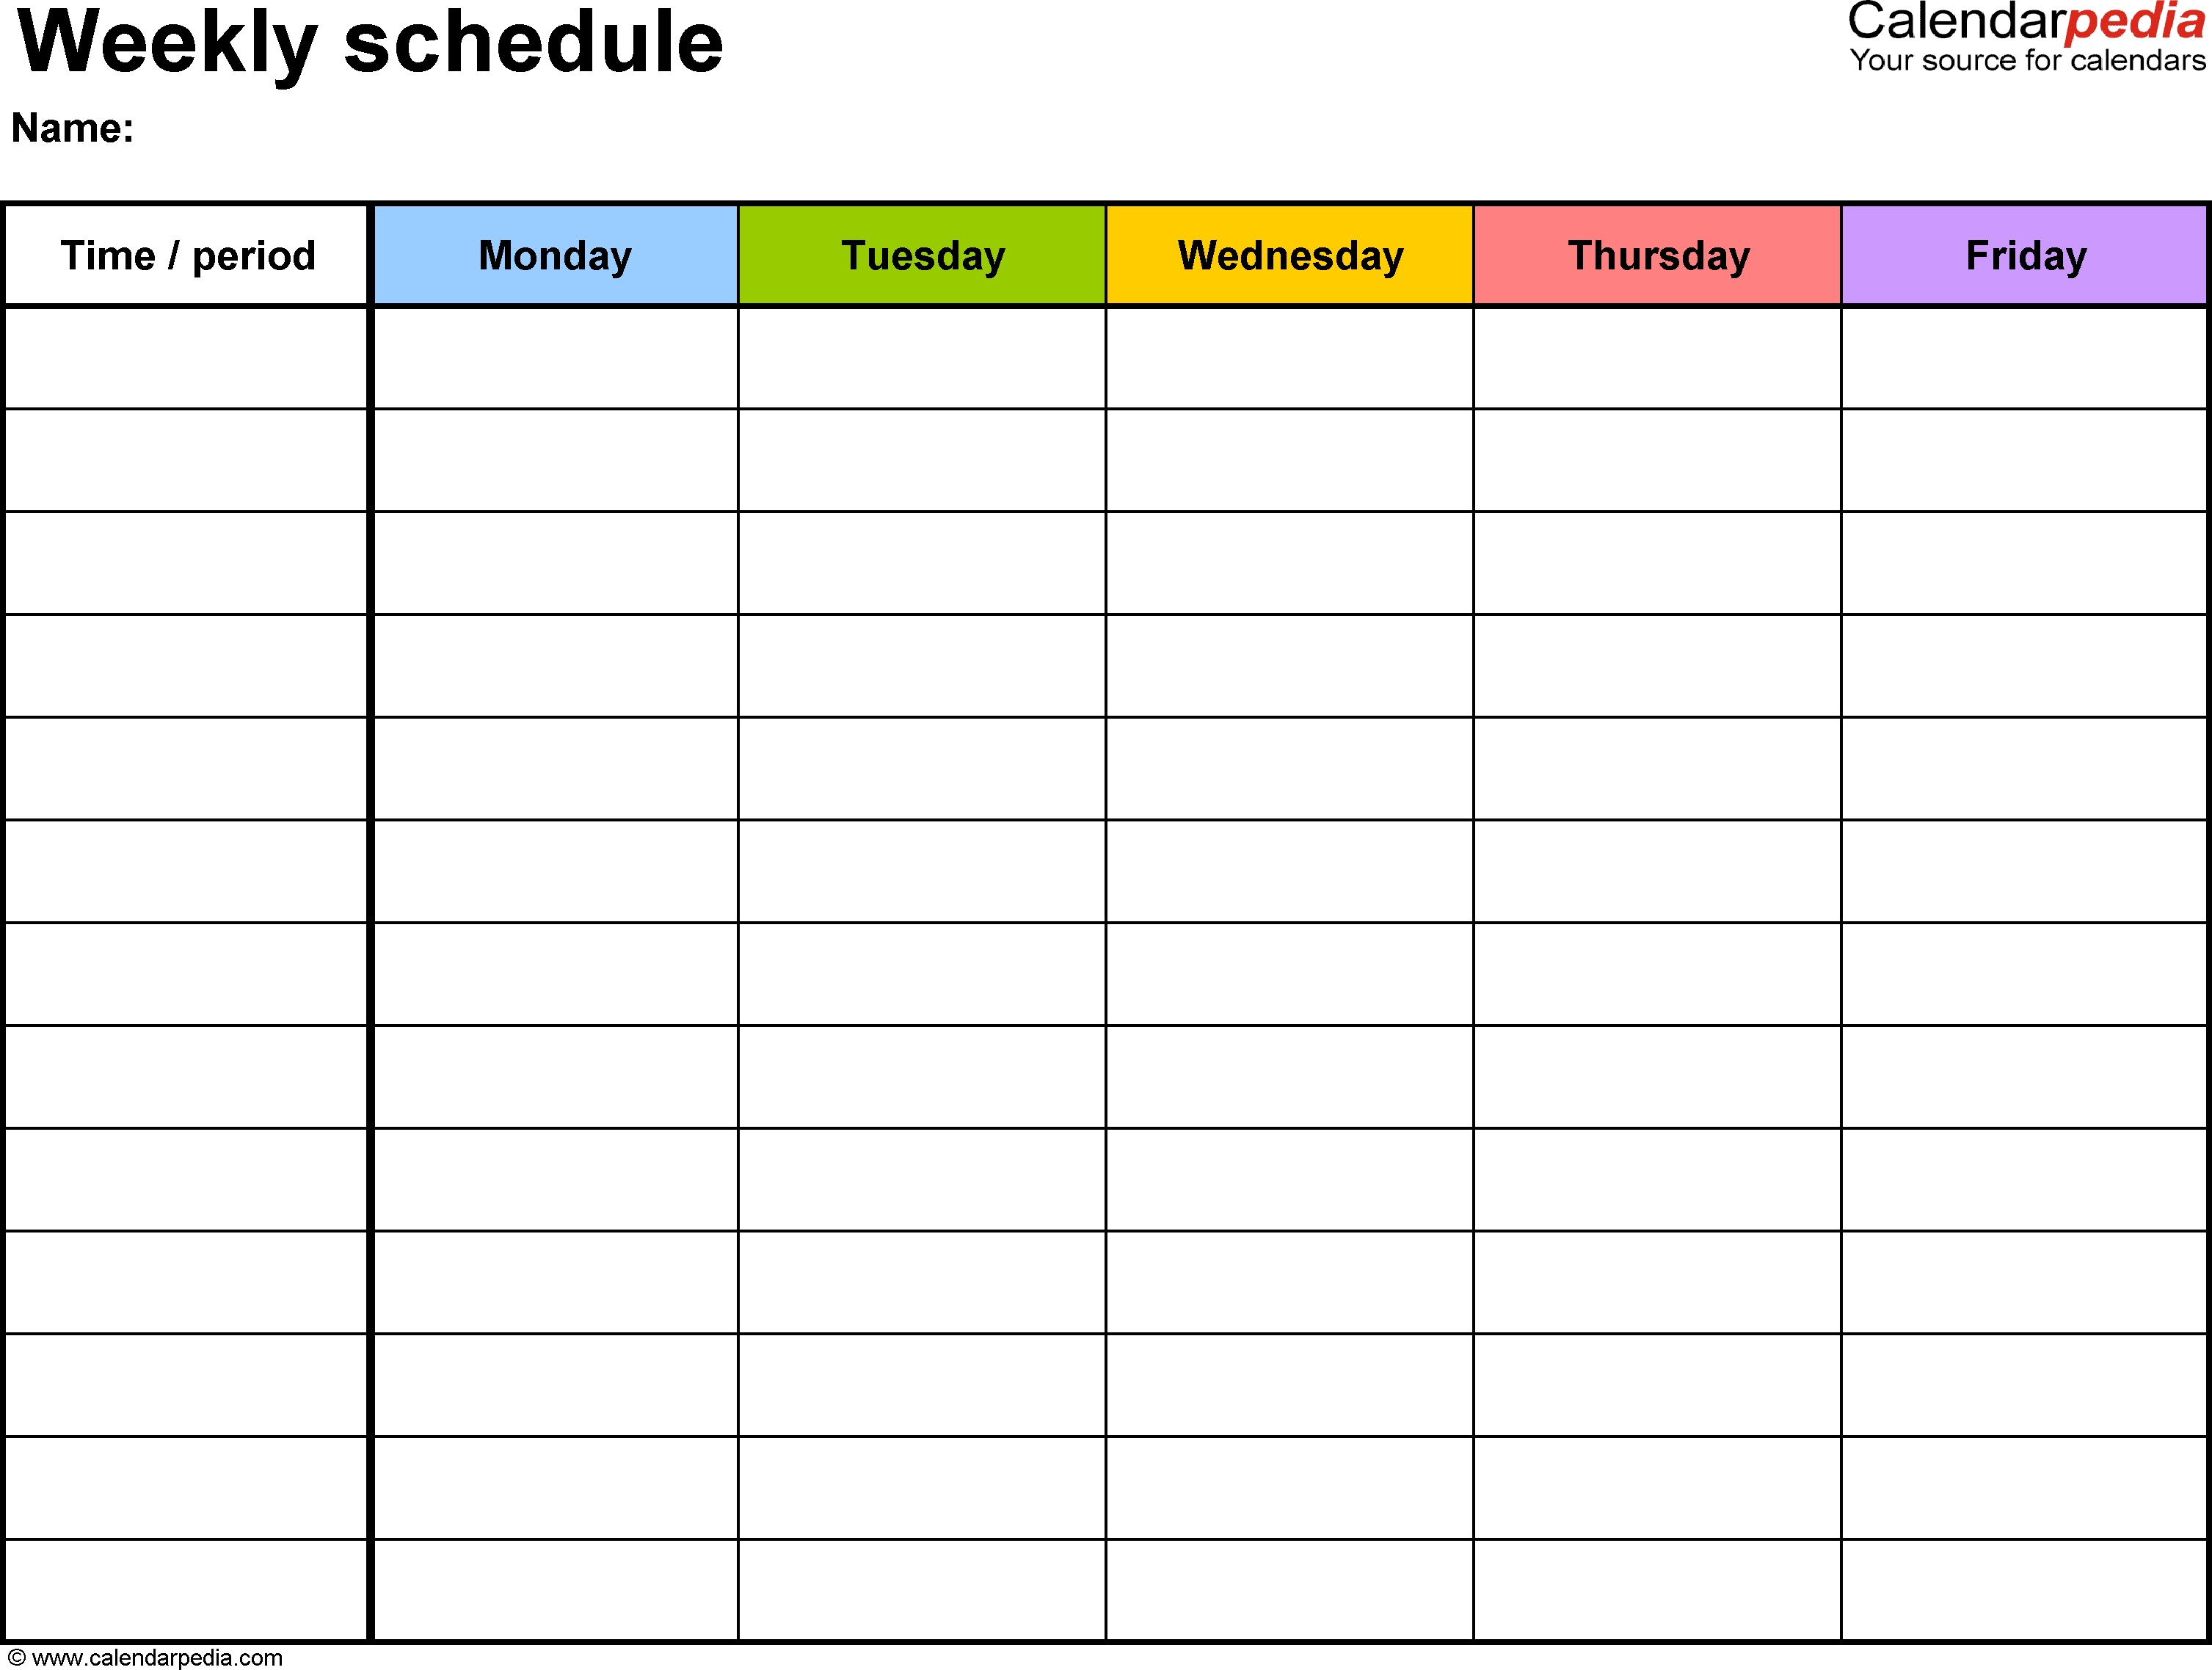 Free Weekly Schedule Templates For Word - 18 Templates with regard to Blank Calendar Printable 5 Day